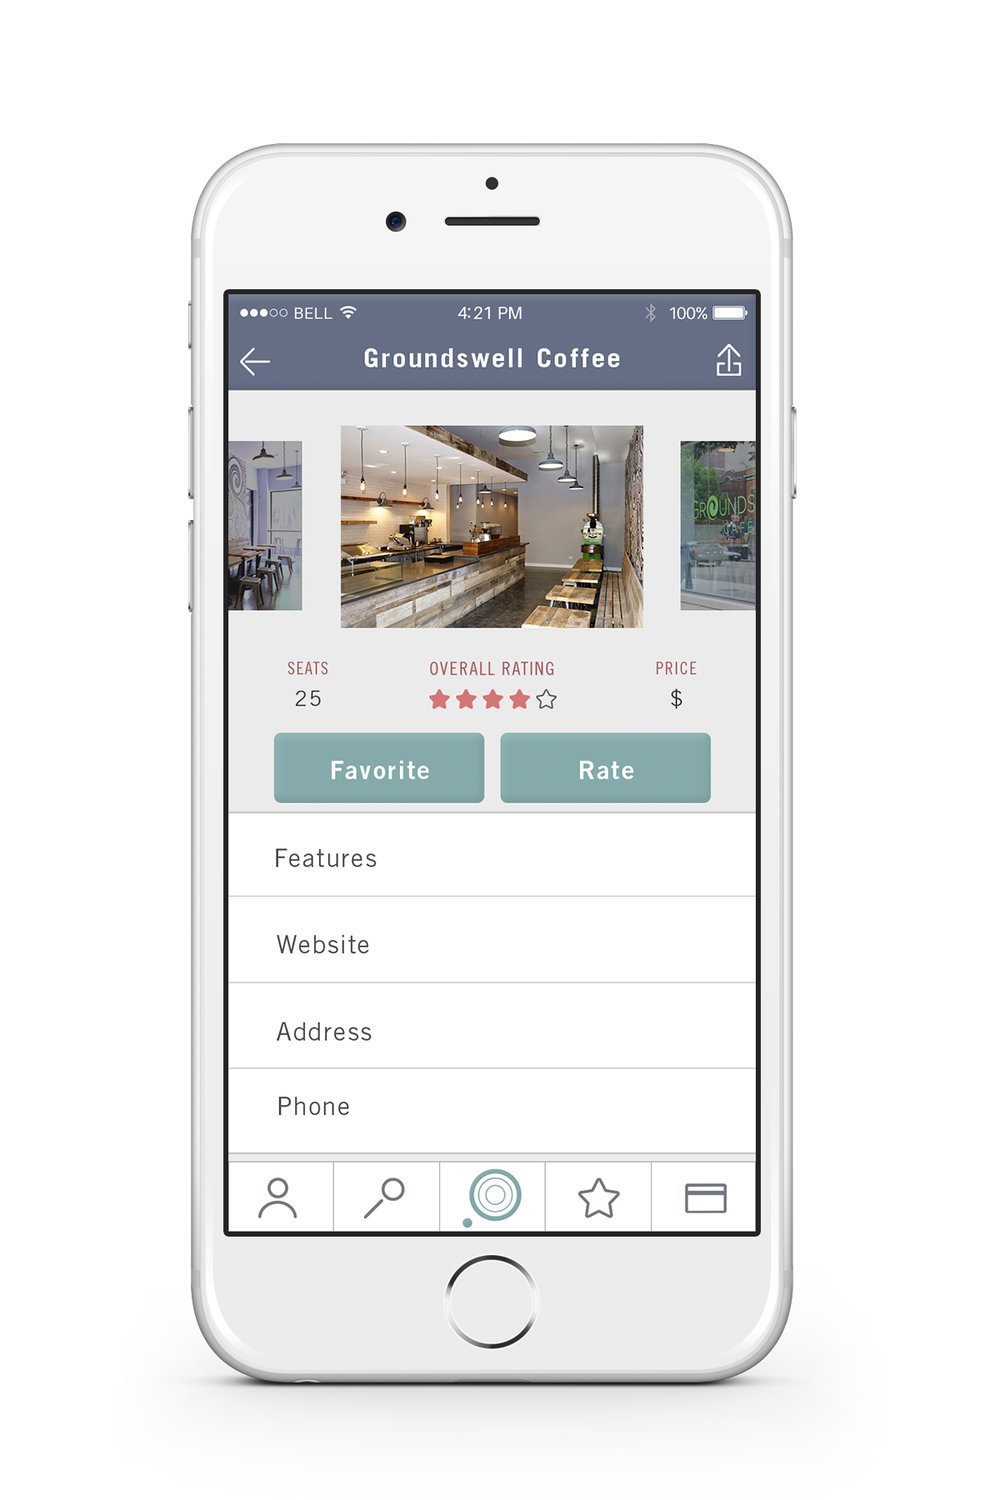 """Location Profile — Each location has a profile page that describes the number of seats currently available, overall rating and price. The user can also find business features and basic information about the location, such as the address and phone number. Tapping the """"Favorite"""" button will add the location to the user's favorites list. Tapping the """"Rate"""" button will allow the user to rate the location."""